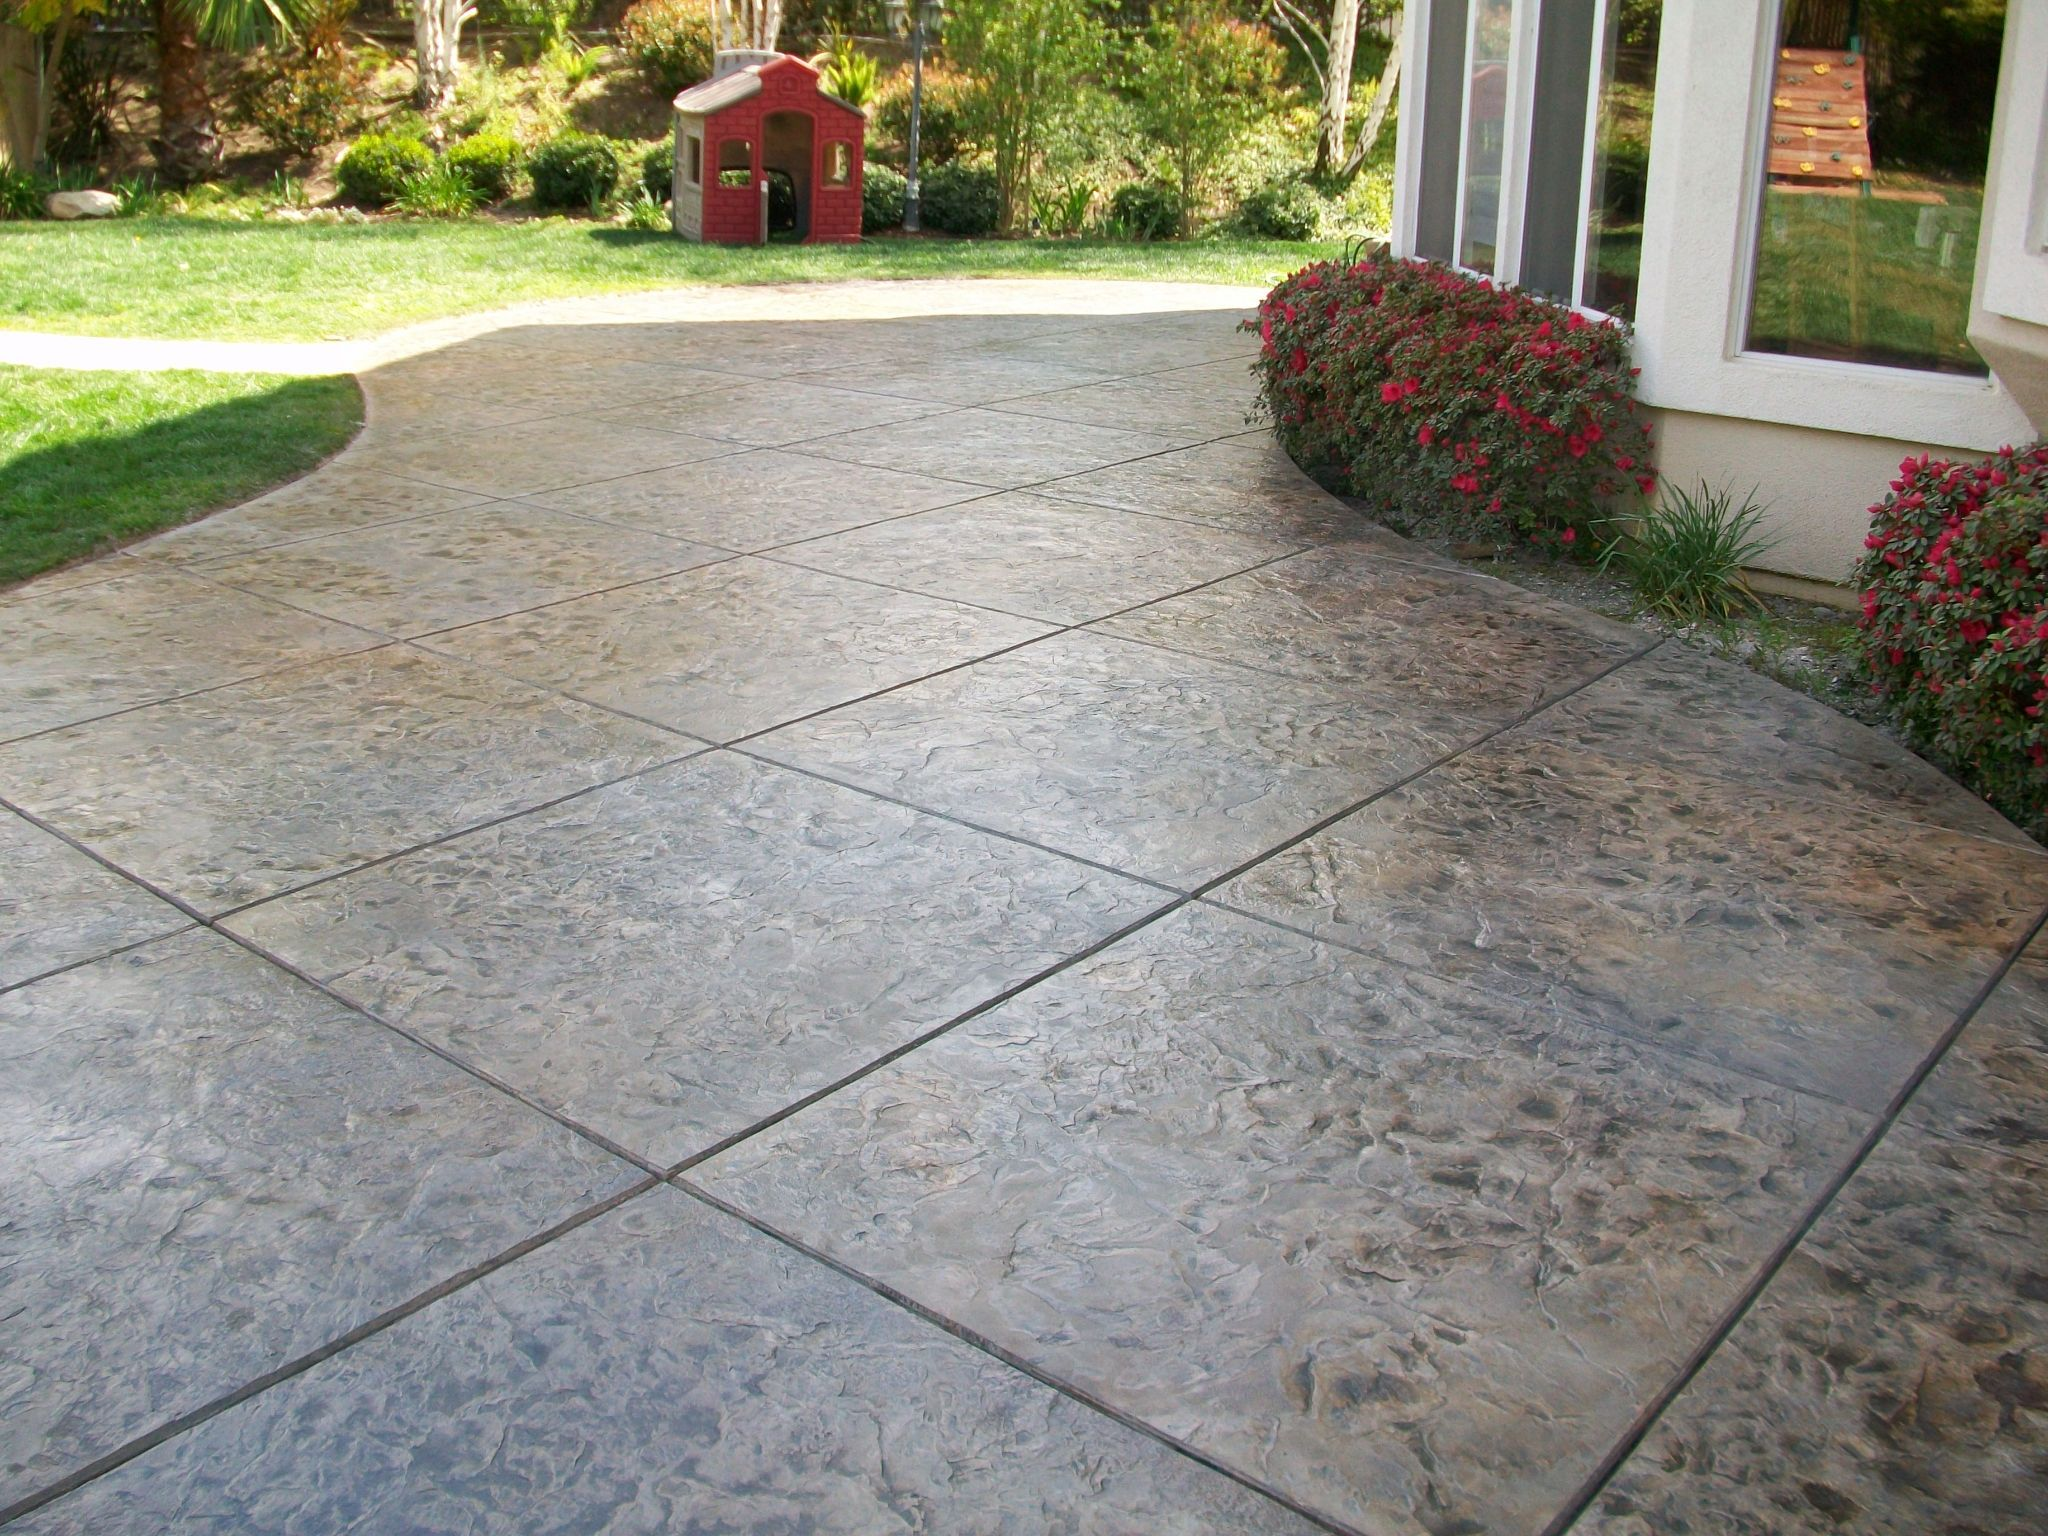 Anximm home decoration ideas for price for stamped concrete patio you can see price for stamped concrete patio and more pictures for home interior